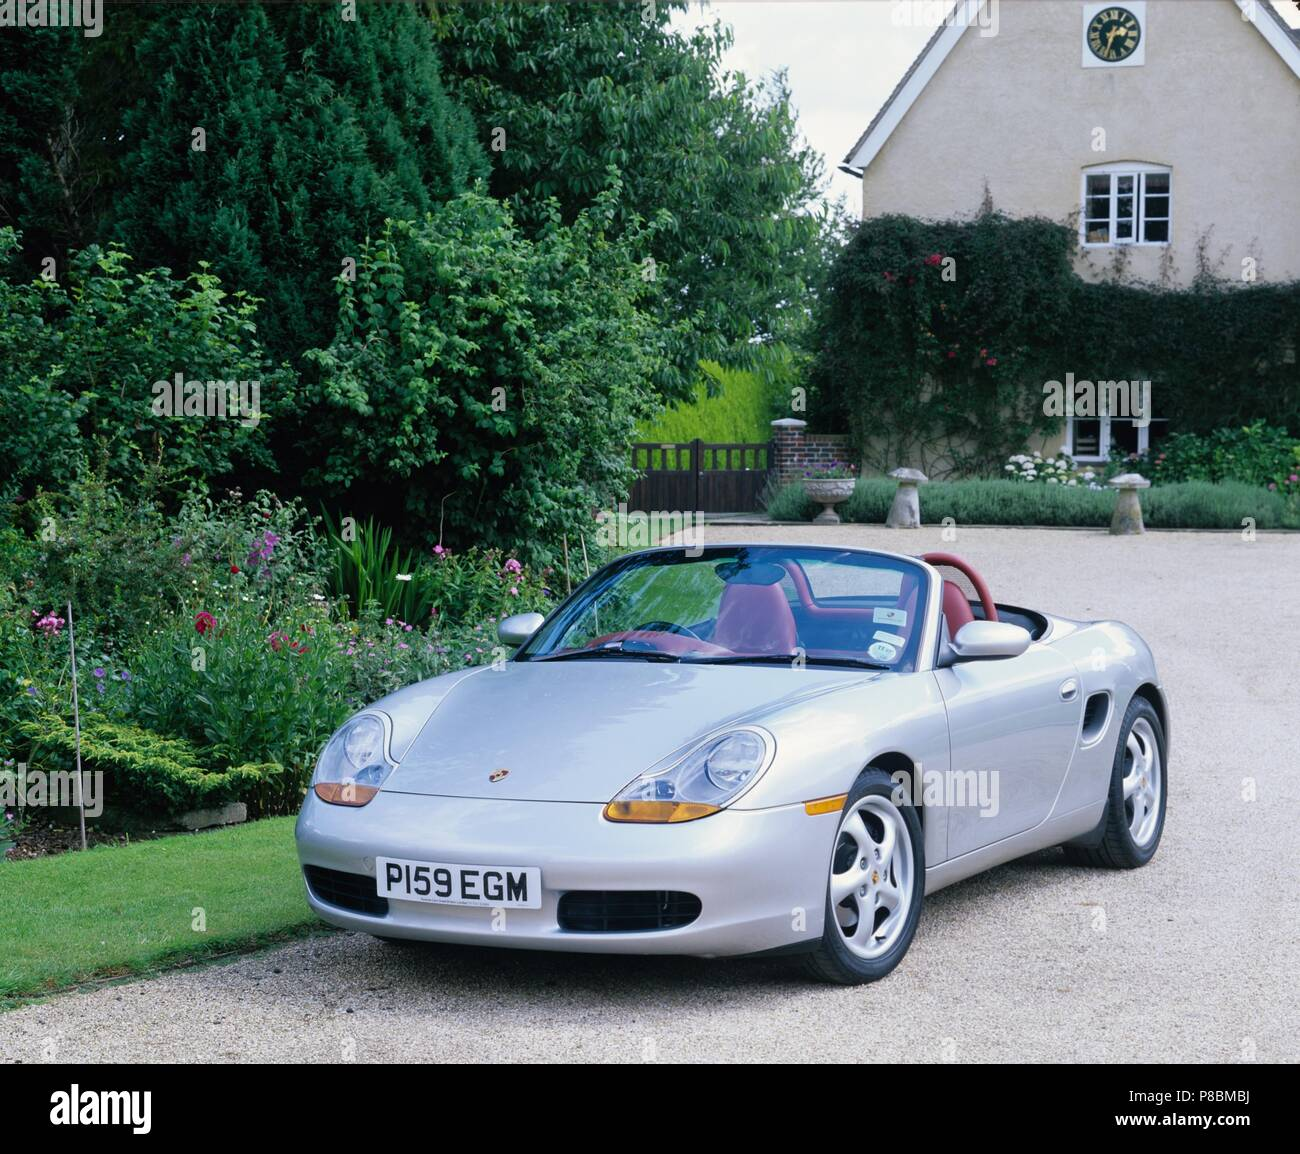 Porsche Boxster 2.5L engine - 1997 model year in silver metallic and in countryside setting showing front view with roof down - Stock Image